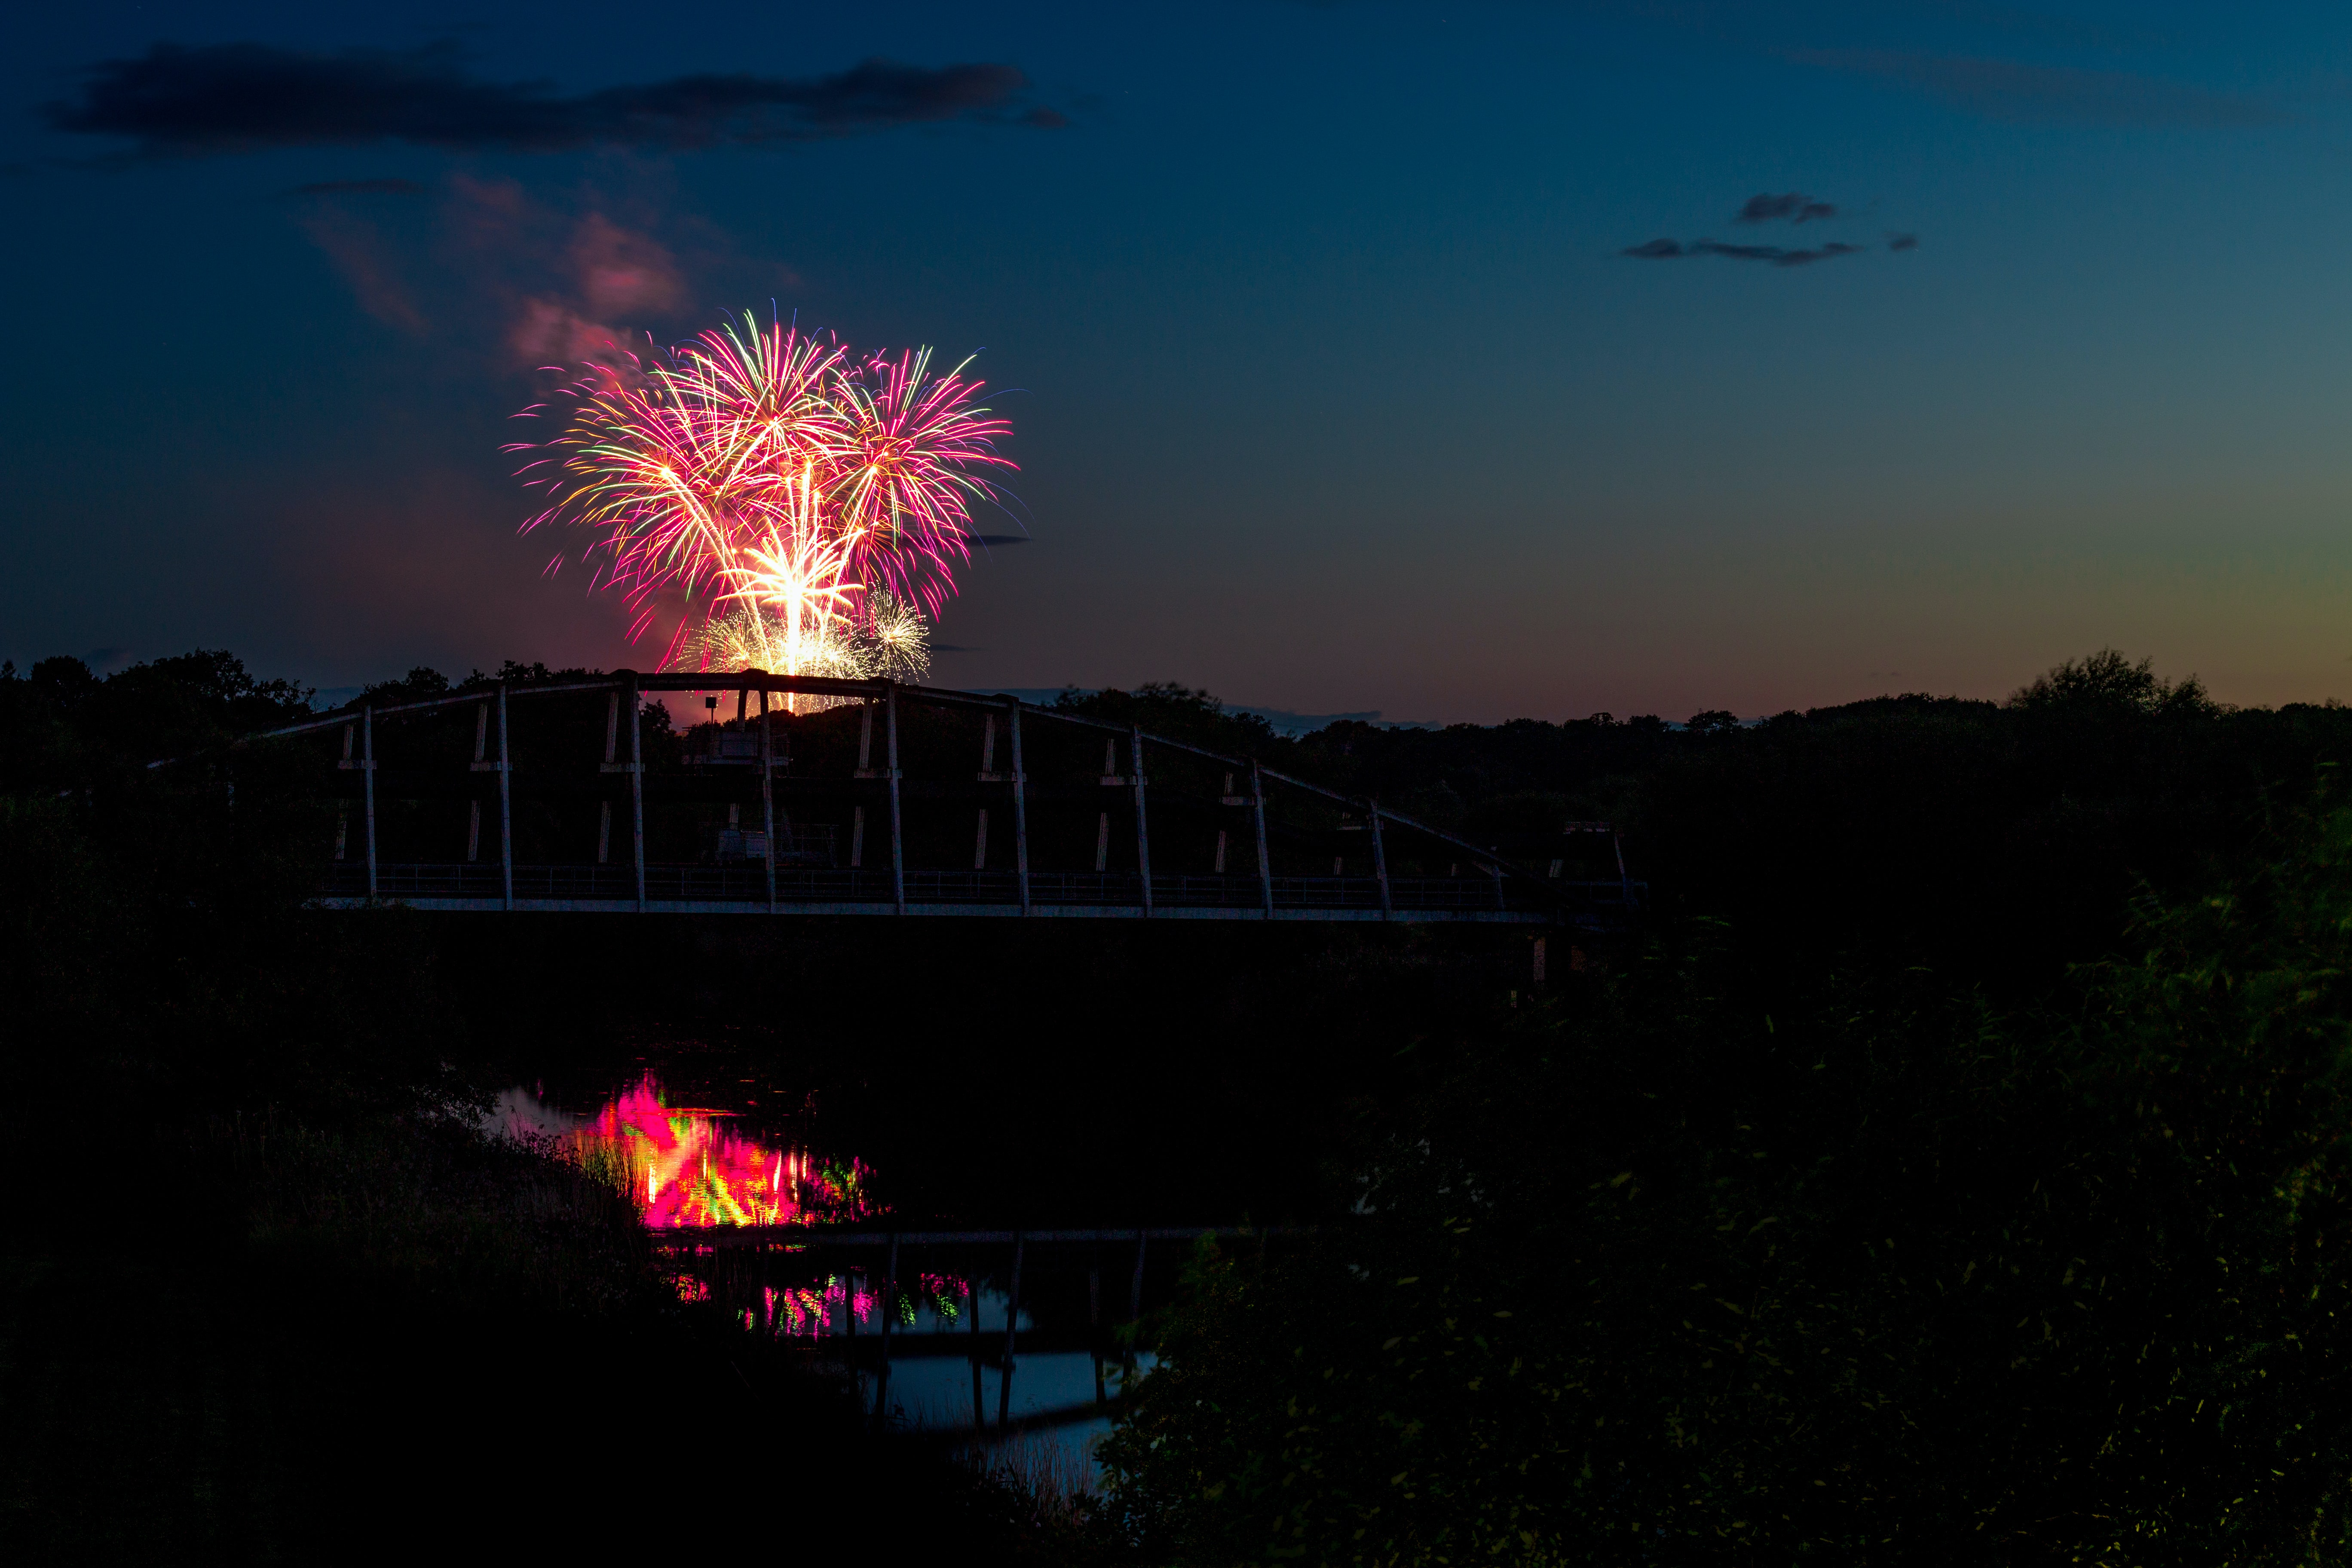 silhouette photo of suspension bridge in front of fireworks